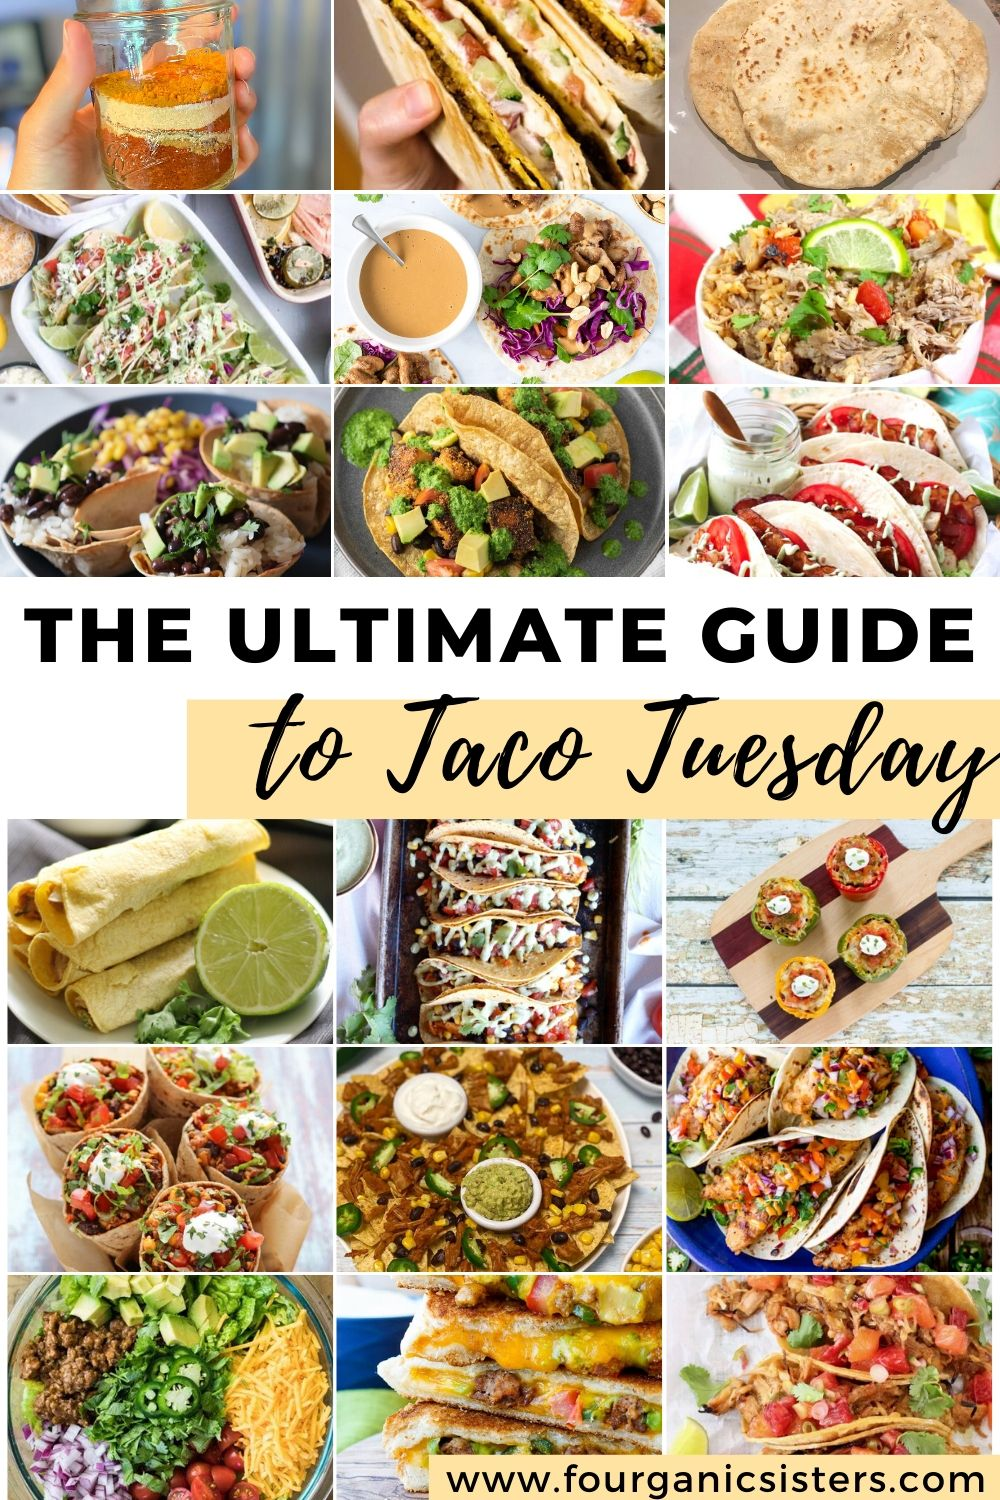 The Ultimate Guide to Taco Tuesday | Fourganic Sisters